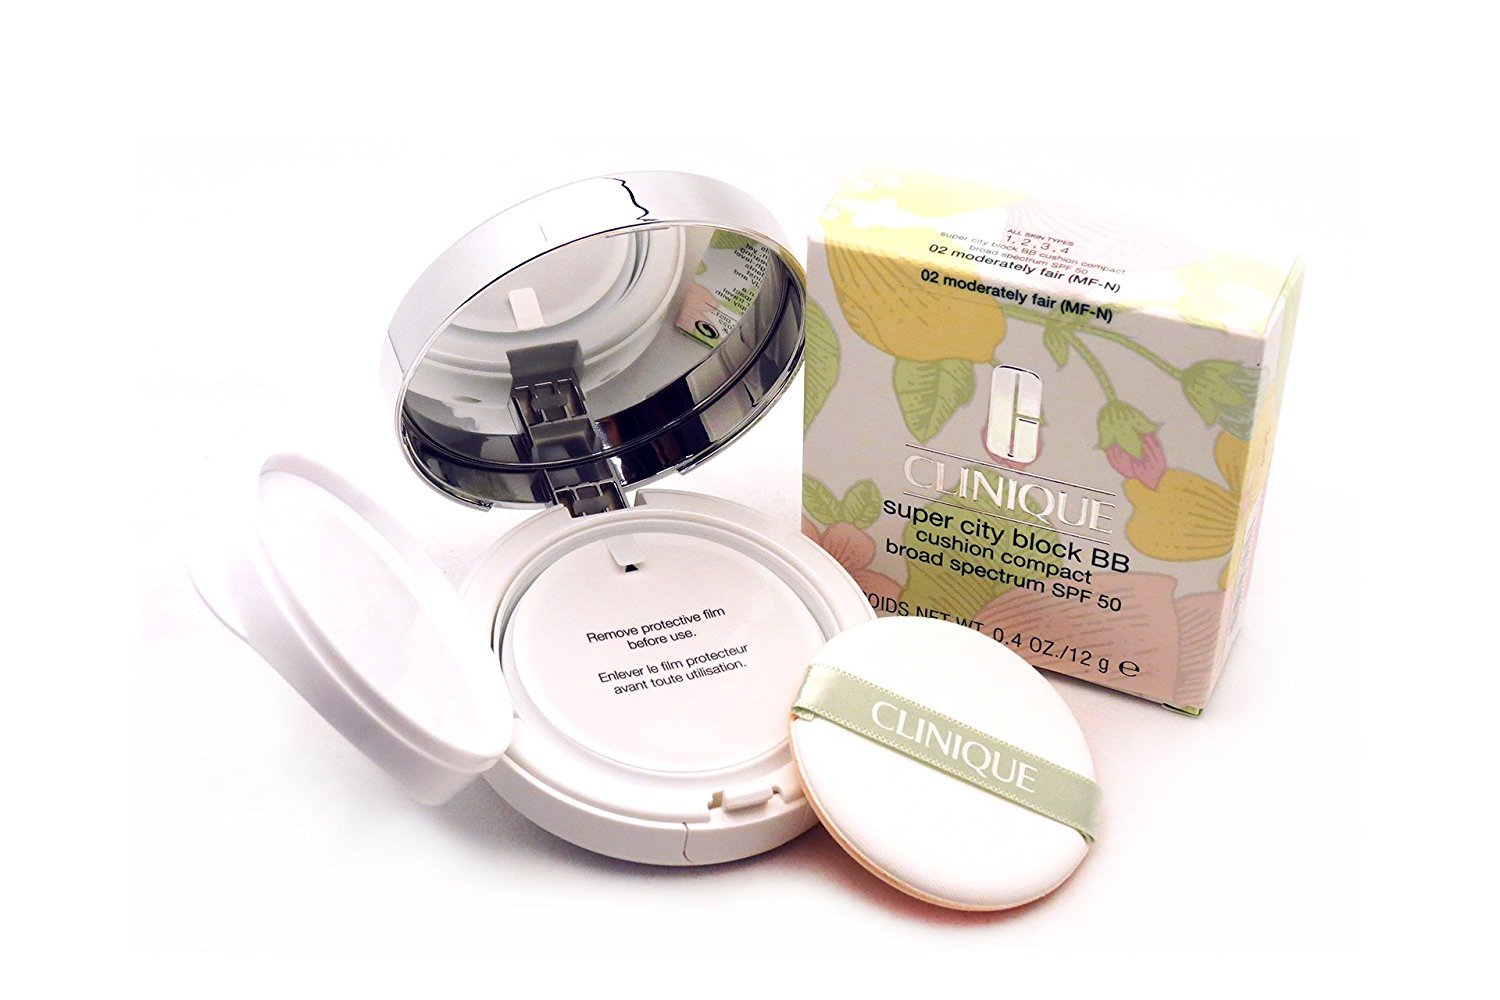 Clinique Super City Block BB Cushion Compact Broad Spectrum SPF 50, 02 Moderately Fair